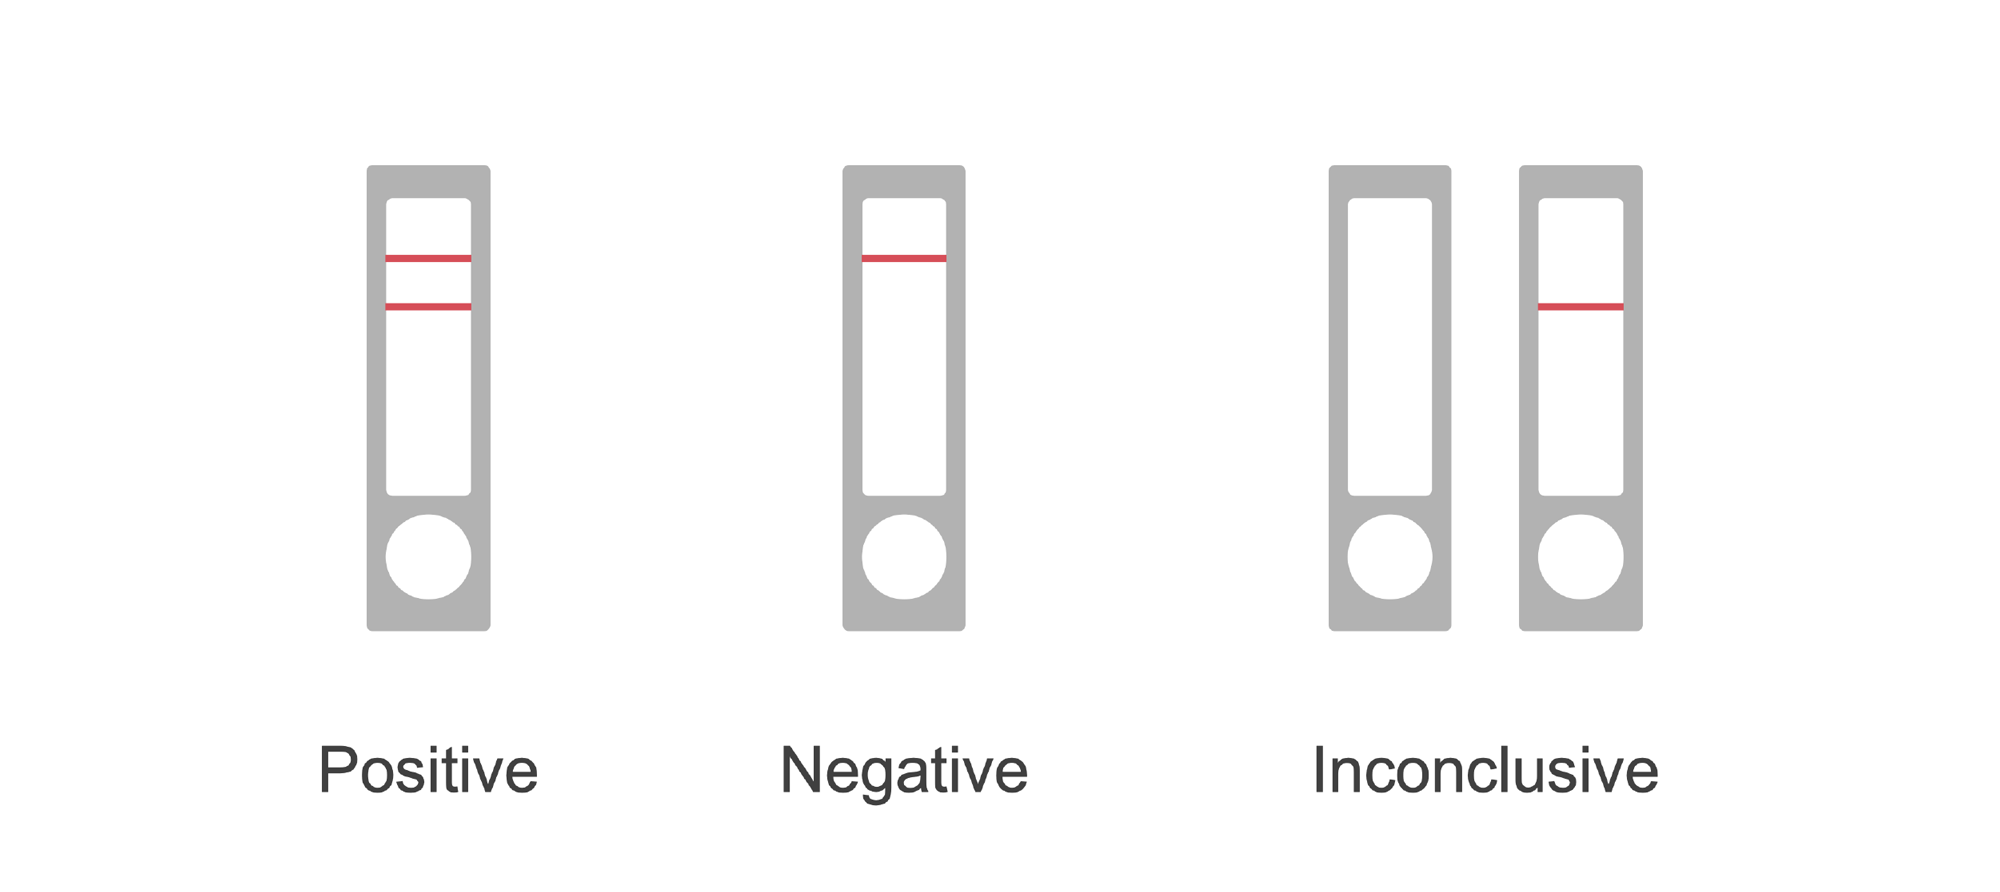 Positive, negative and inconclusive test results on lateral flow immunoassay tests. Illustration.